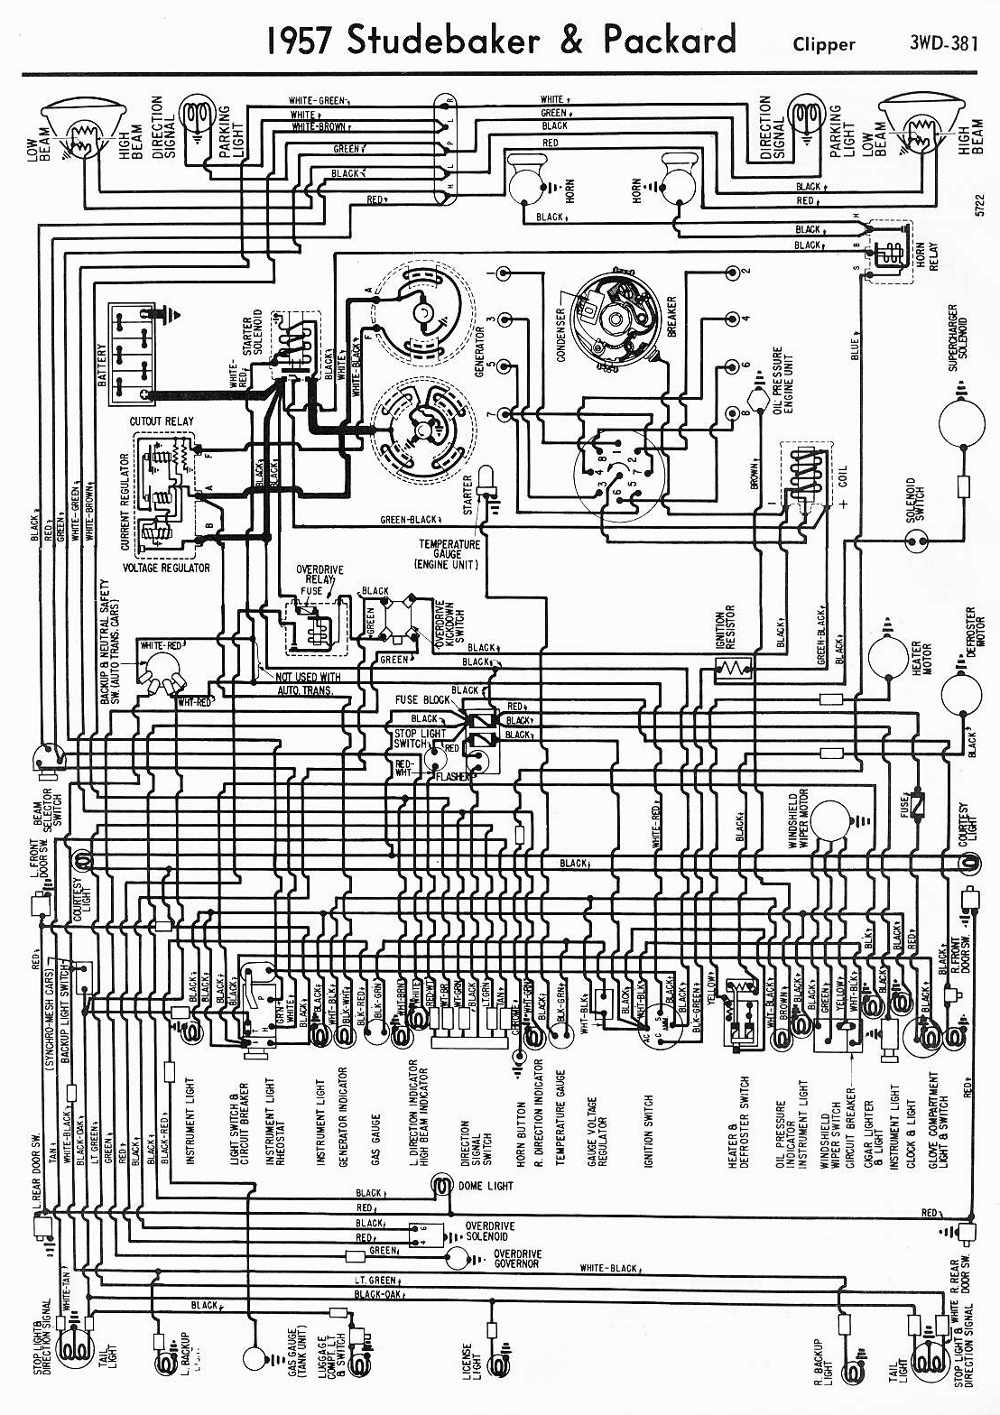 Diagram 4 Wire Inte Wiring Diagram Full Version Hd Quality Wiring Diagram 125183 Vincentescrive Fr